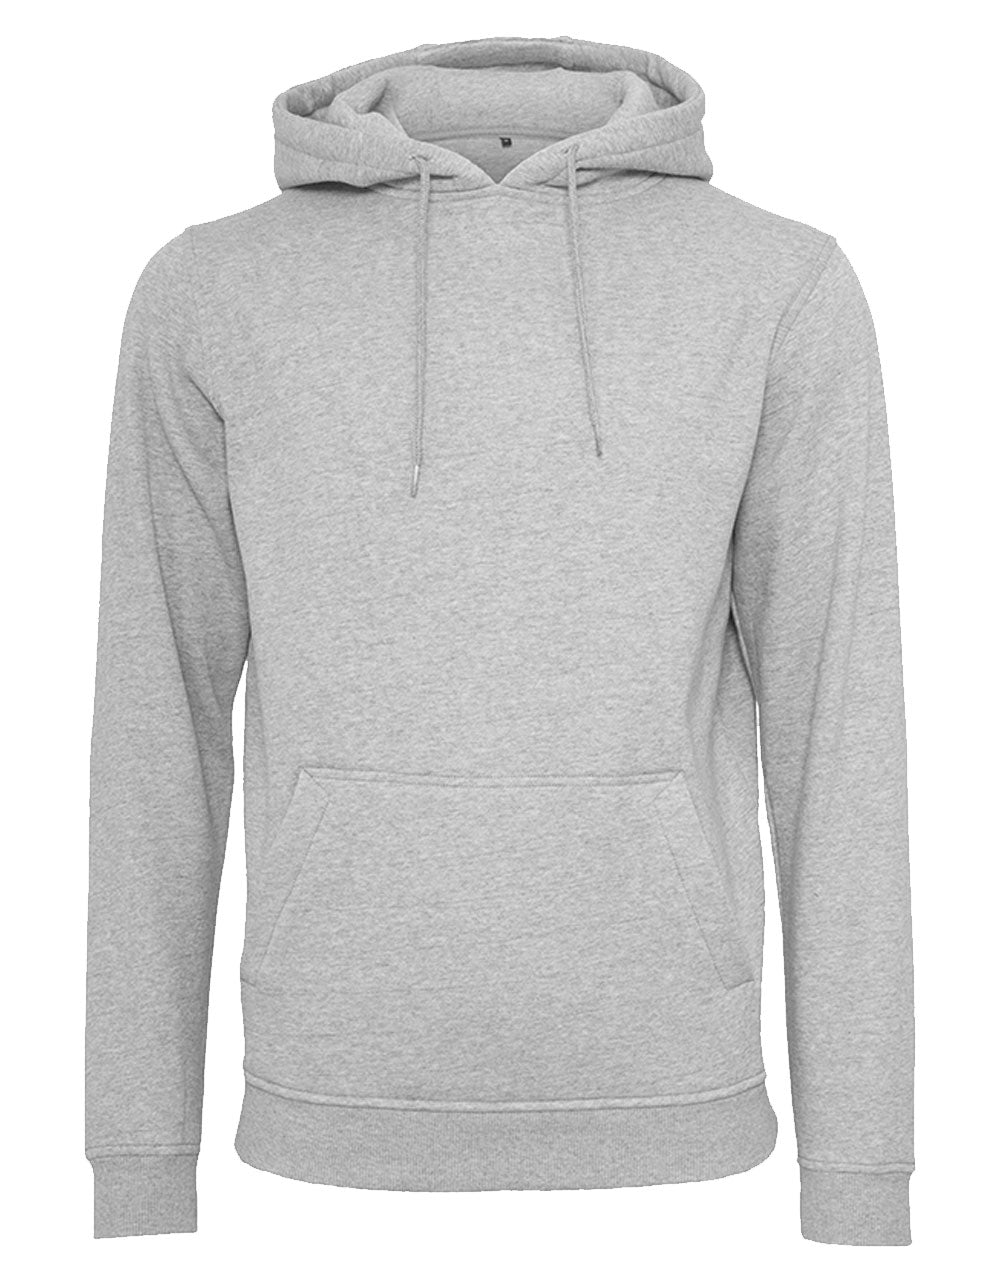 Simple - Sweat à Capuche Gris